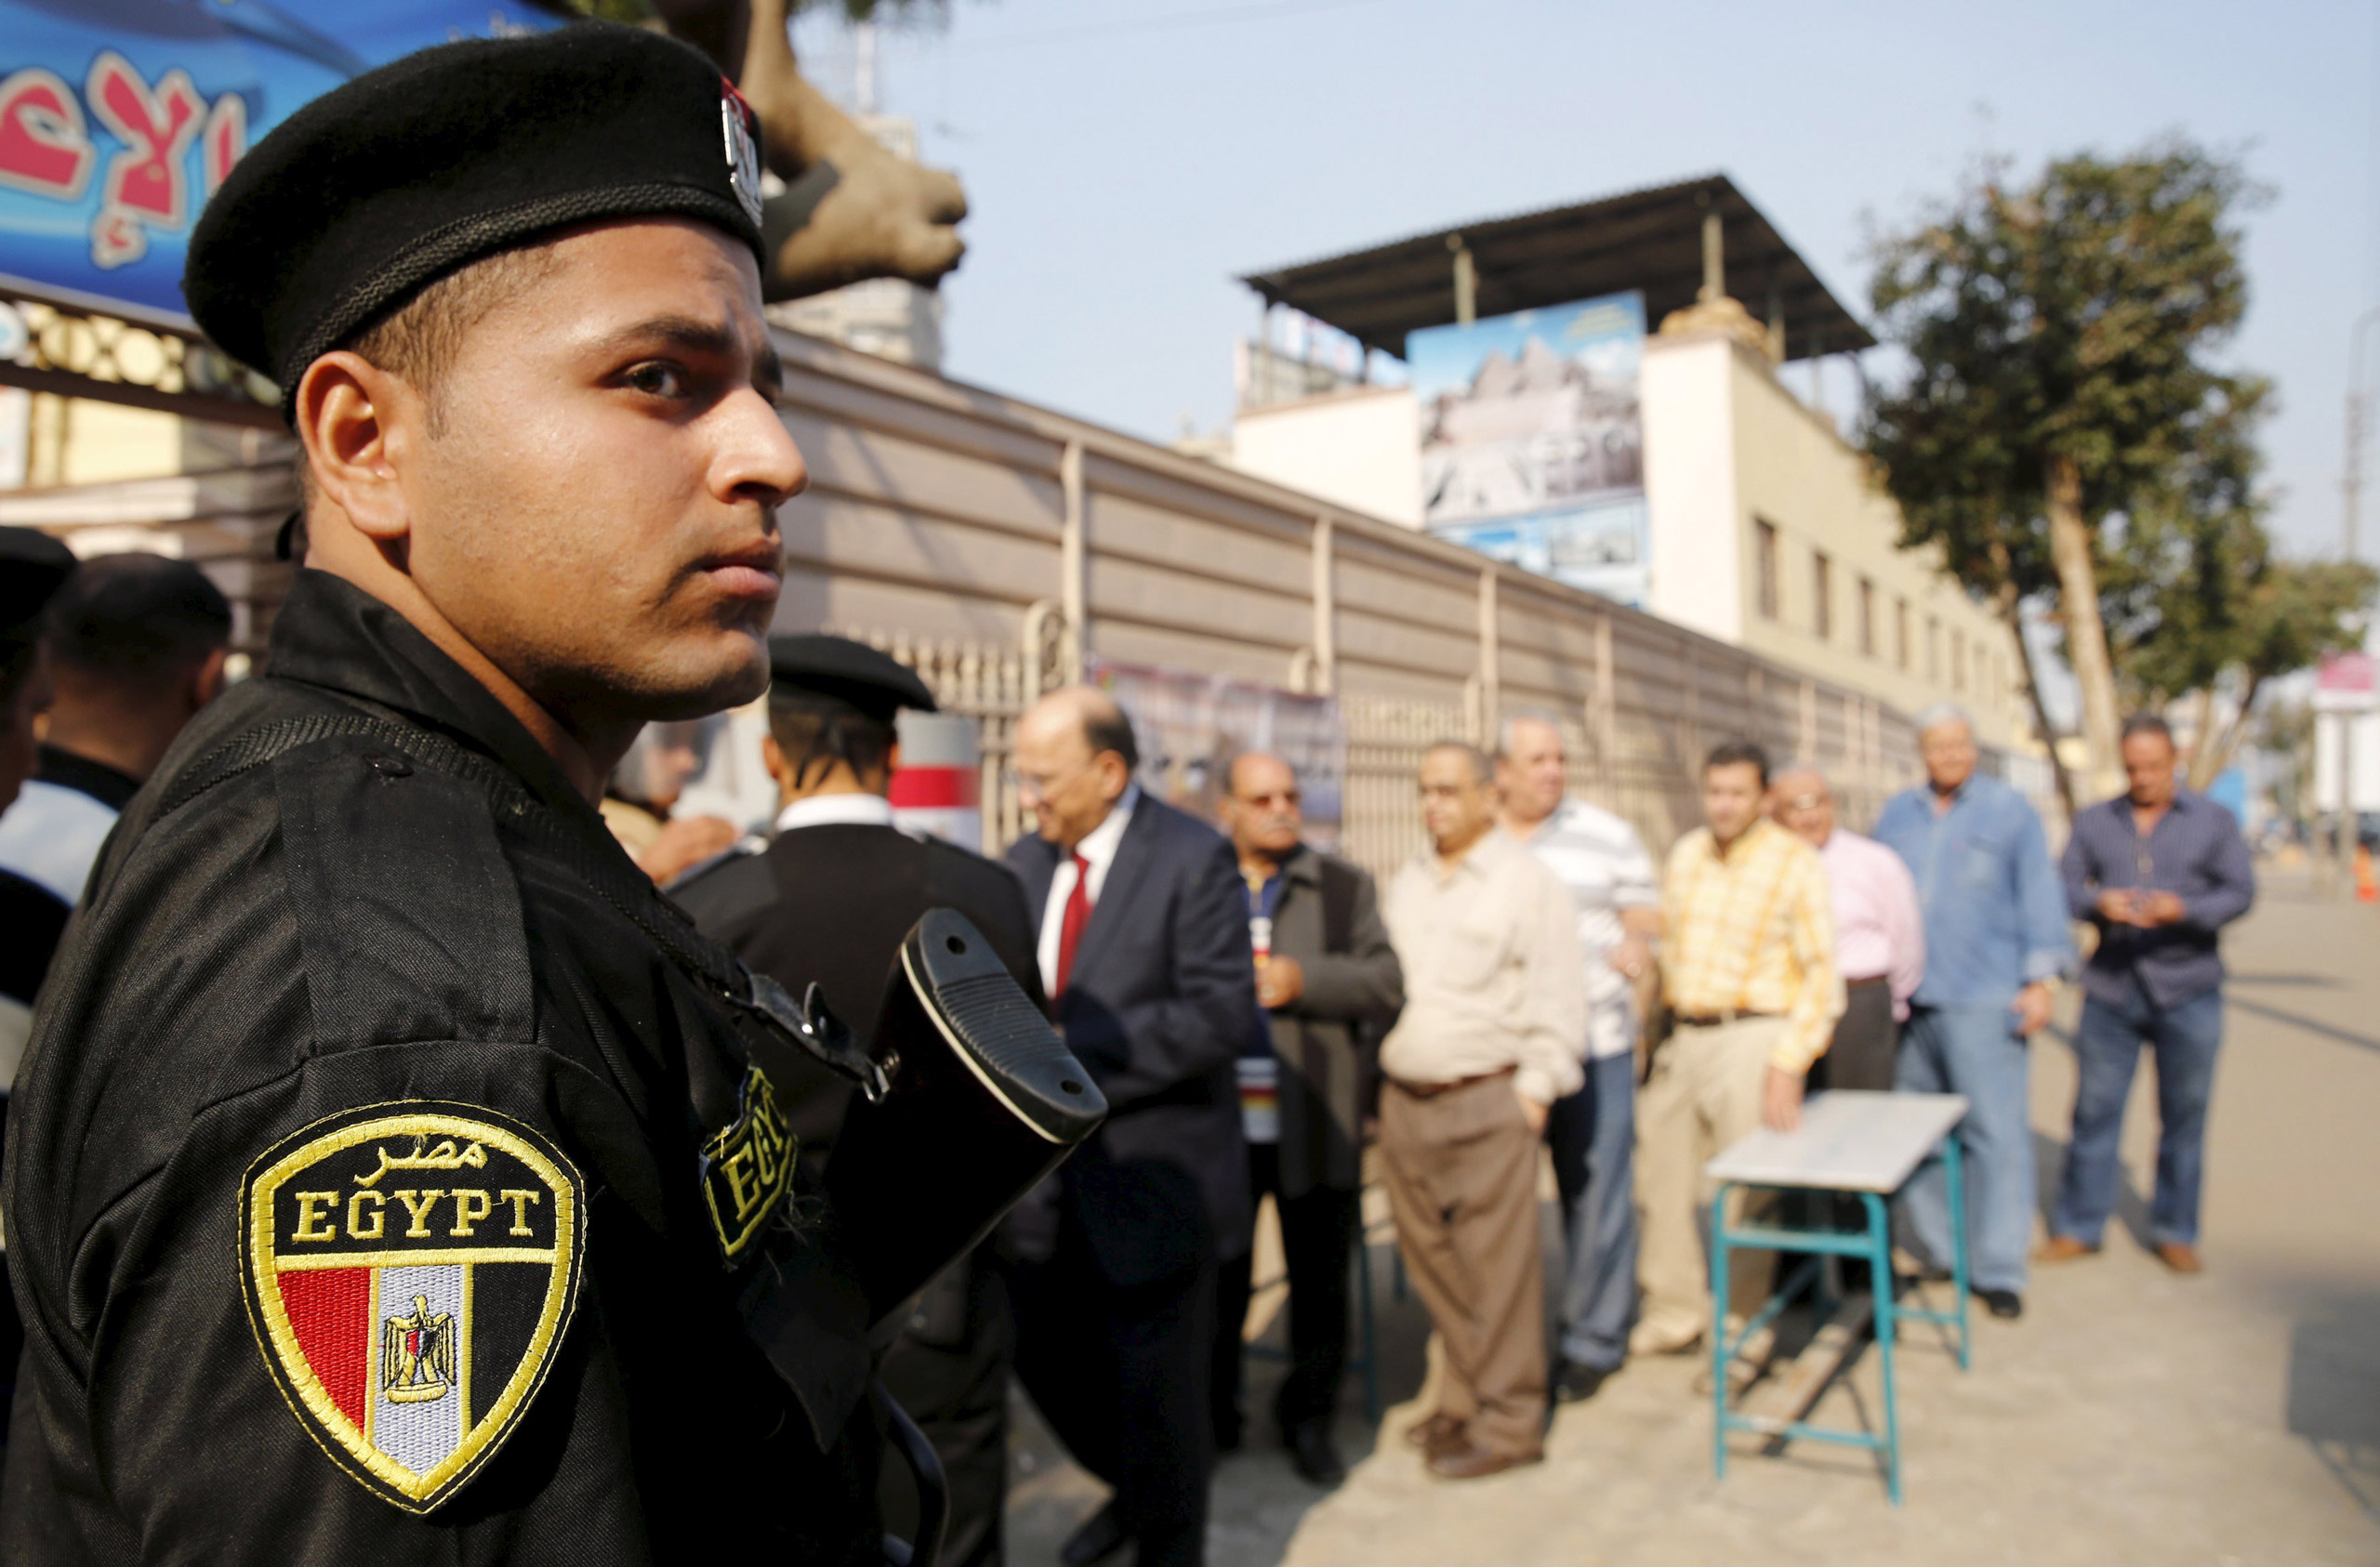 A policeman stands guard in front of people lining up to vote at school used as a polling station during the second round of parliament elections at Heliopolis in Cairo on Nov. 22, 2015.